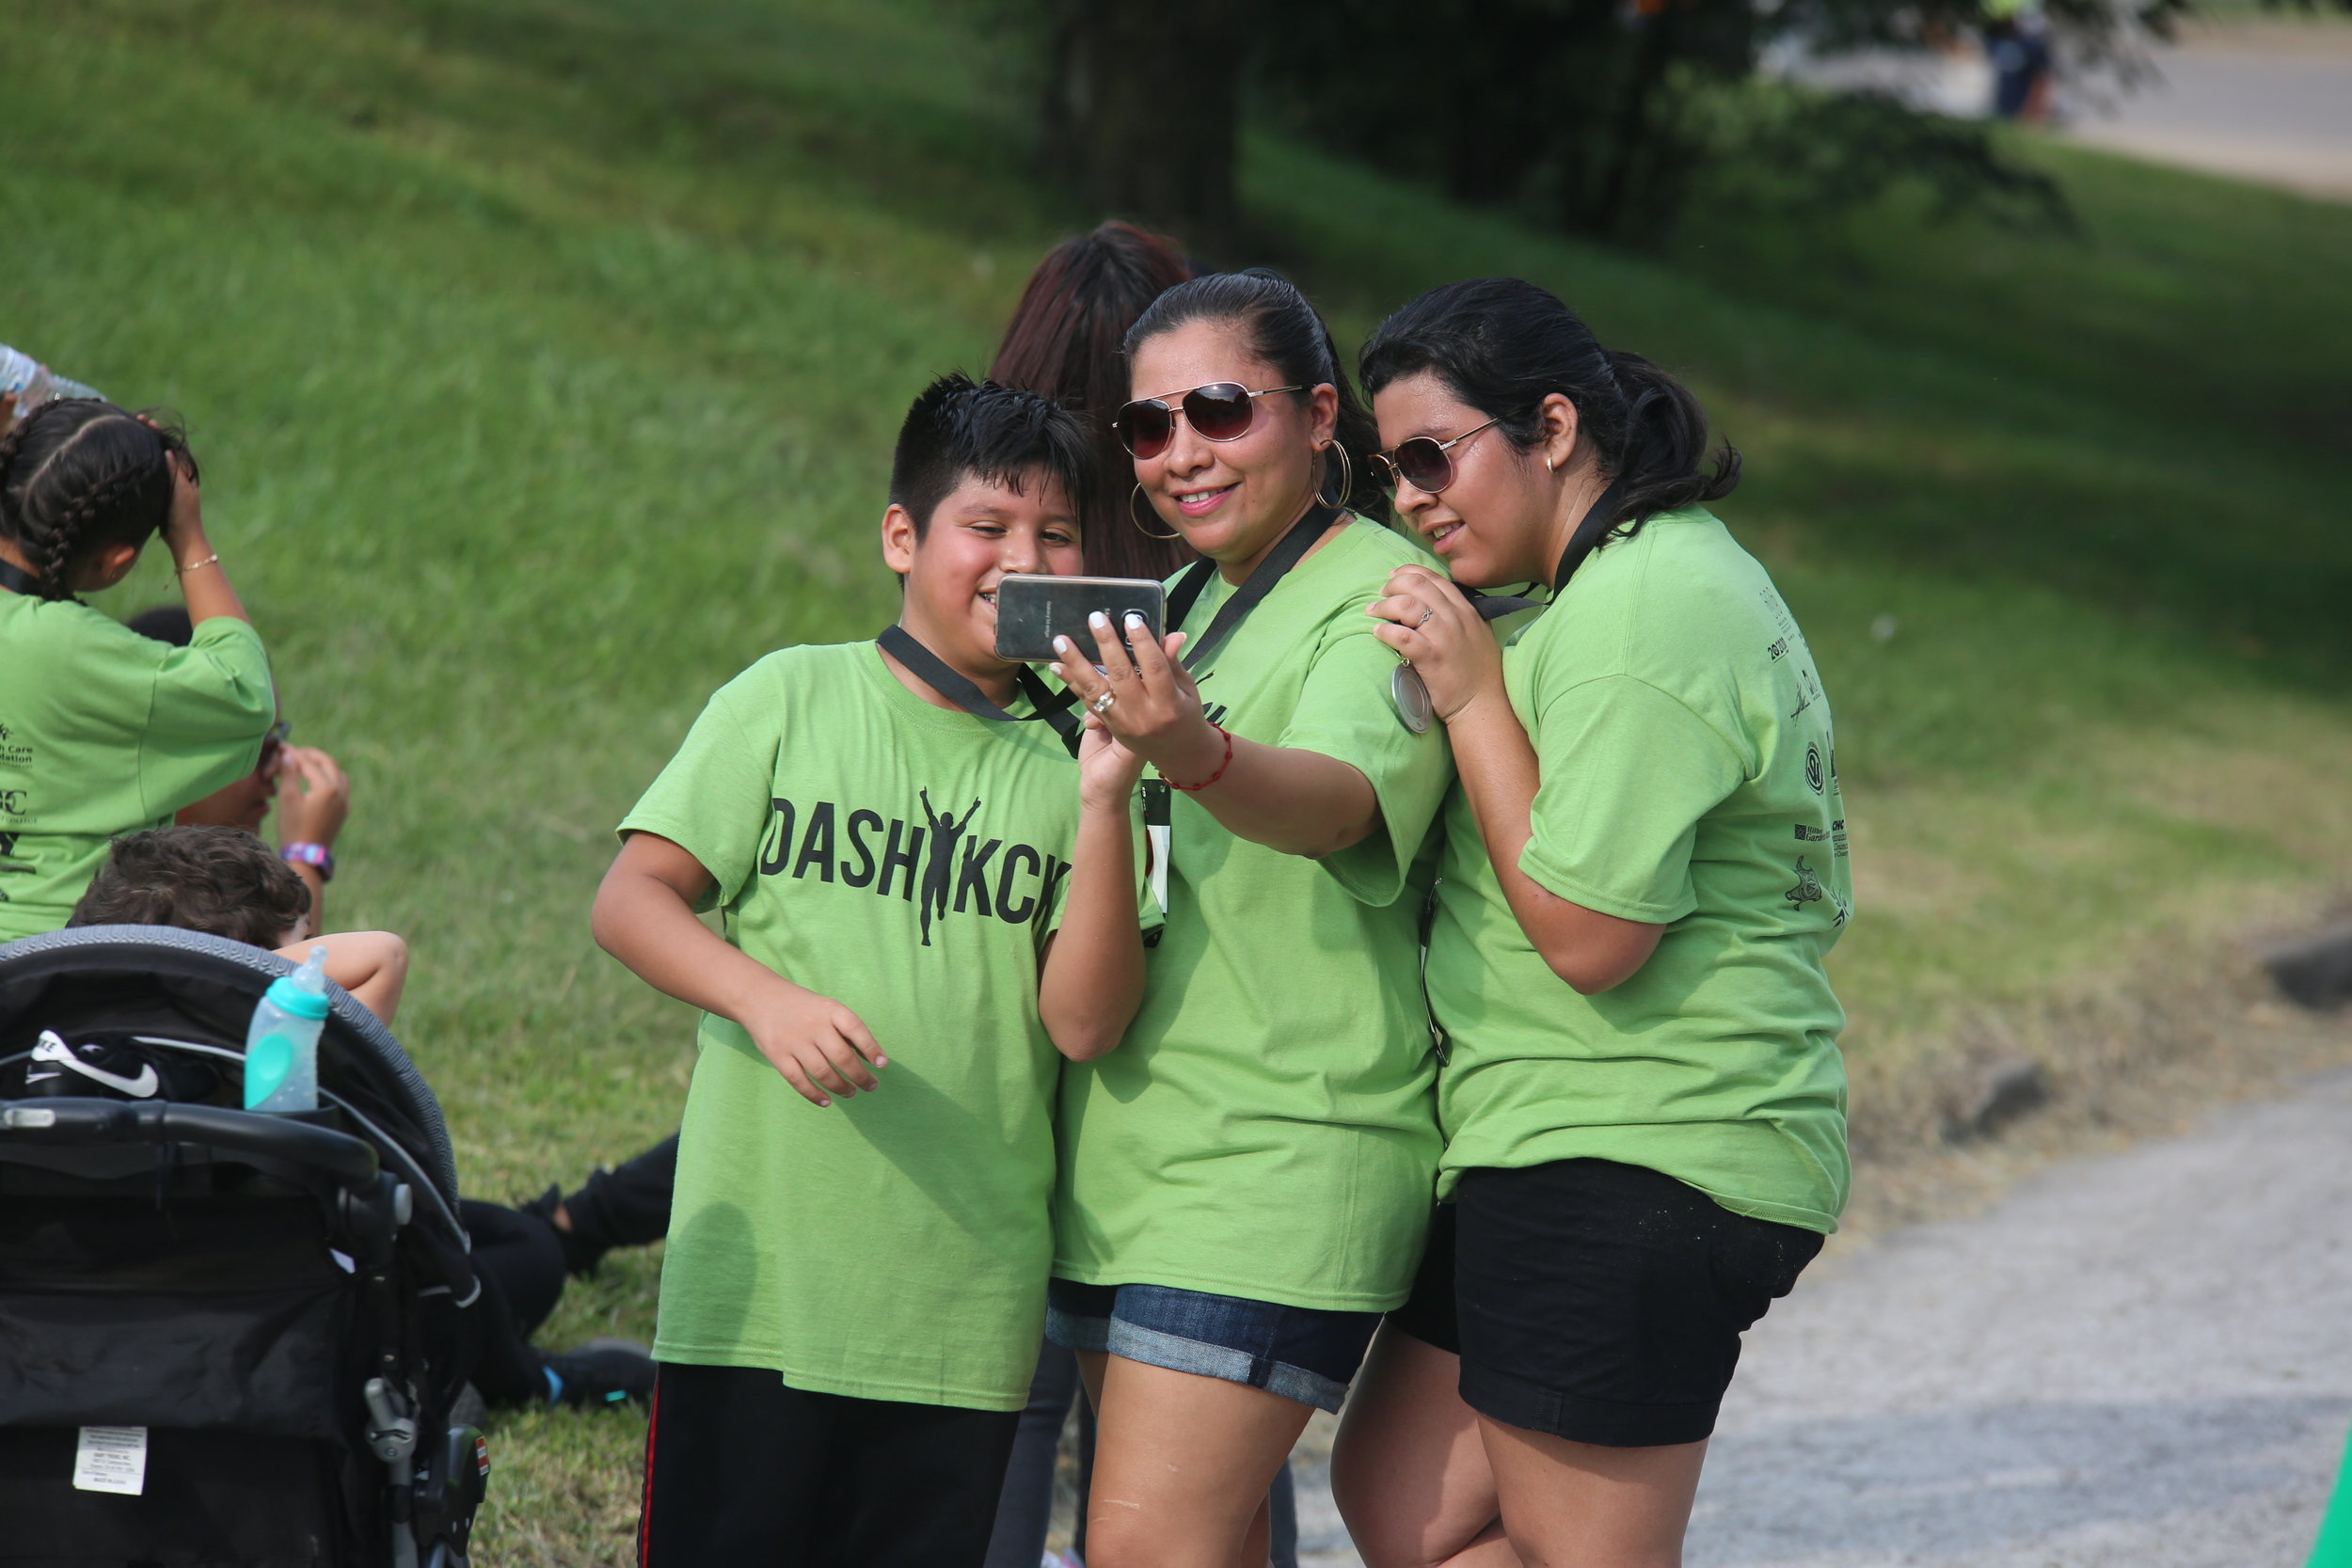 Dash KCK 5k participants the next day enjoyed their run on the Jersey Creek Trail.